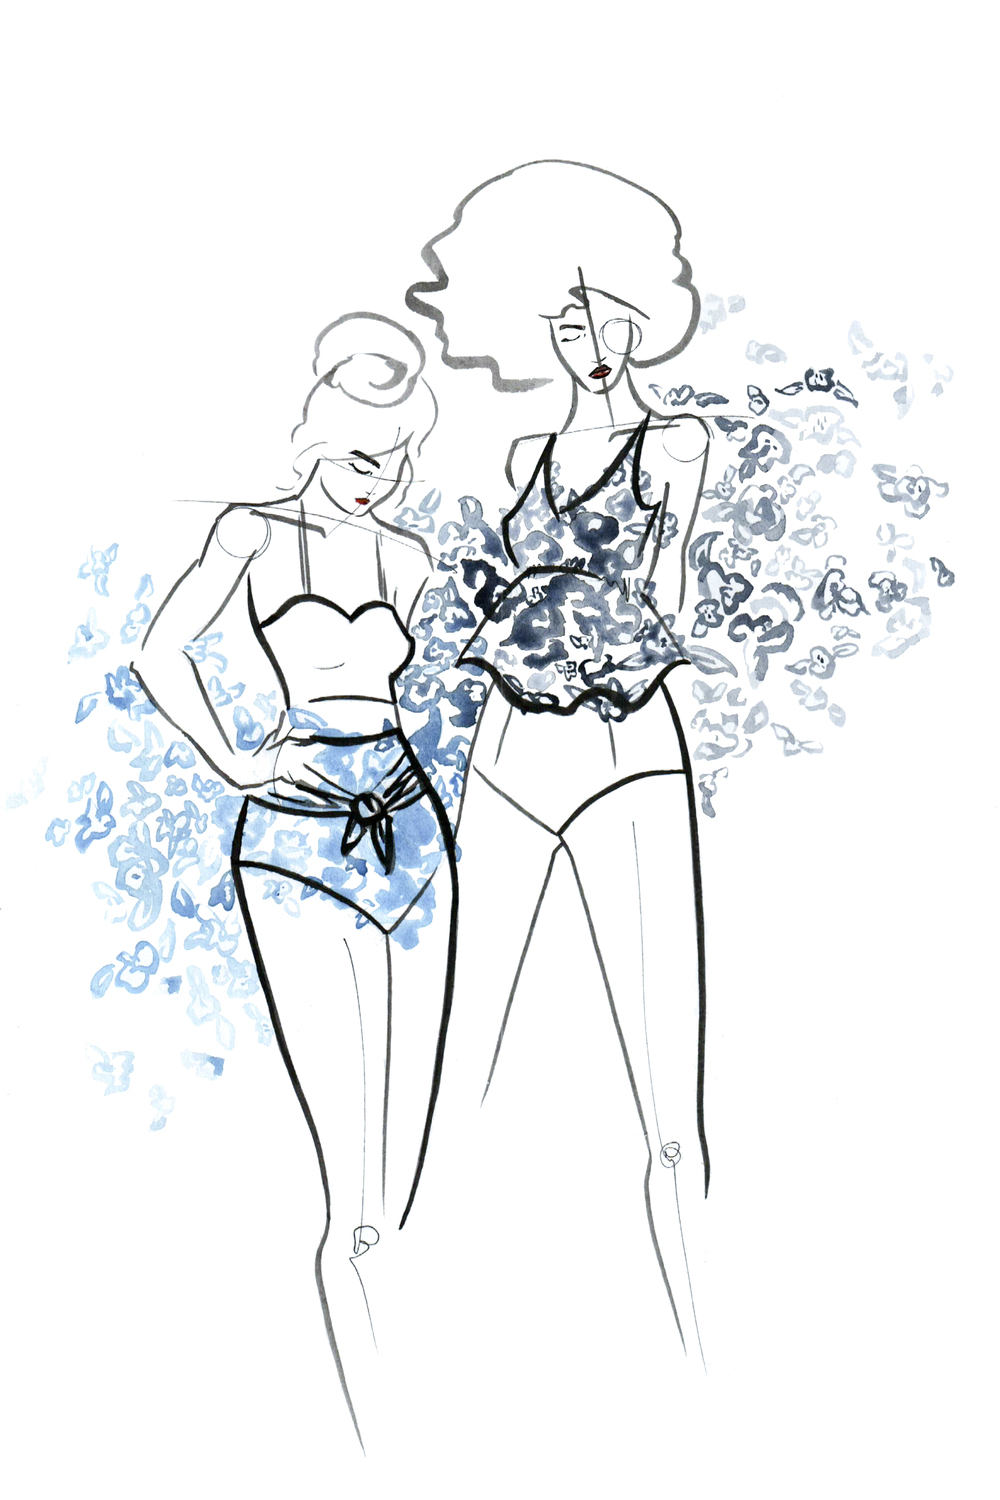 Kortni Jeane Blue Floral and Black and White Floral Swimsuit illustrated by Victoria-Riza